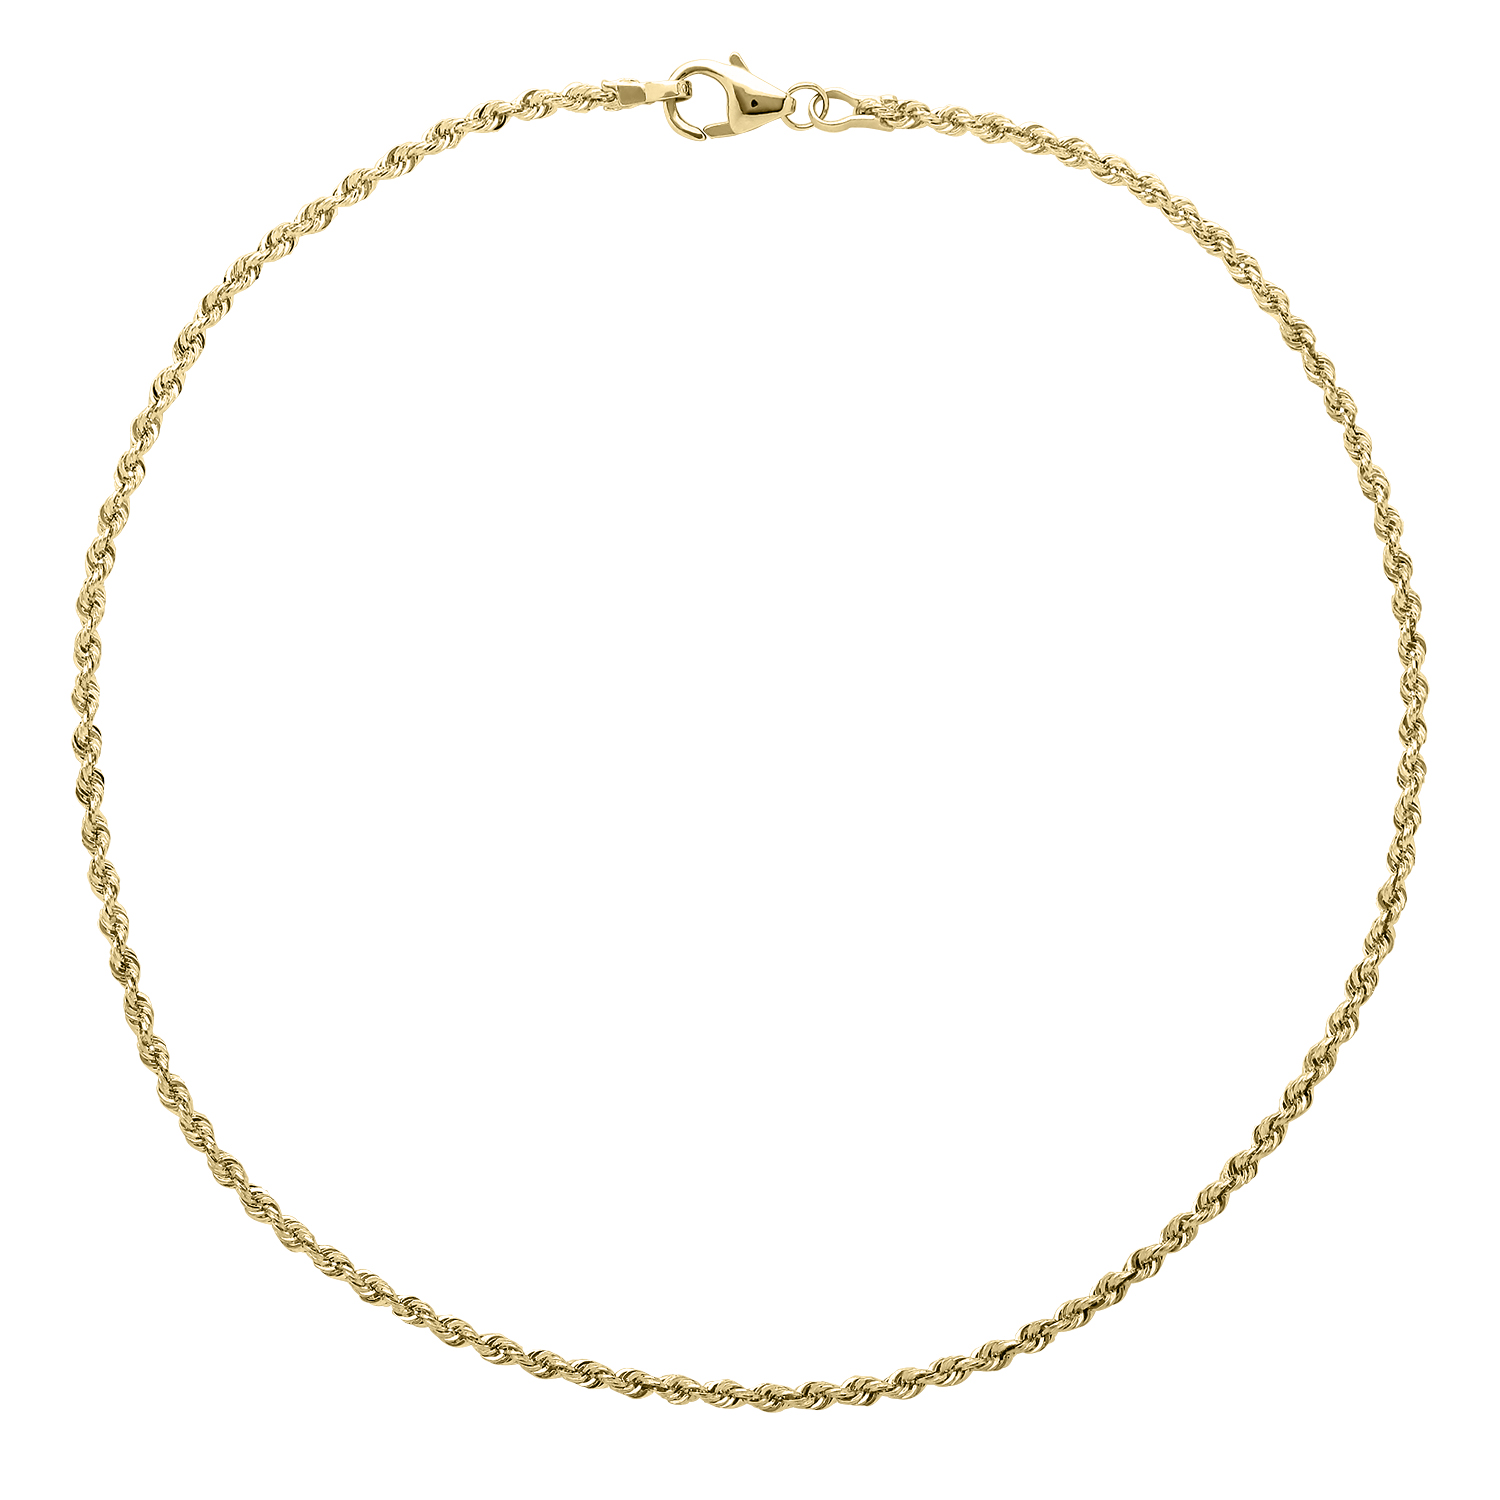 Simply Gold 10kt Yellow Gold 2.0mm Rope Anklet